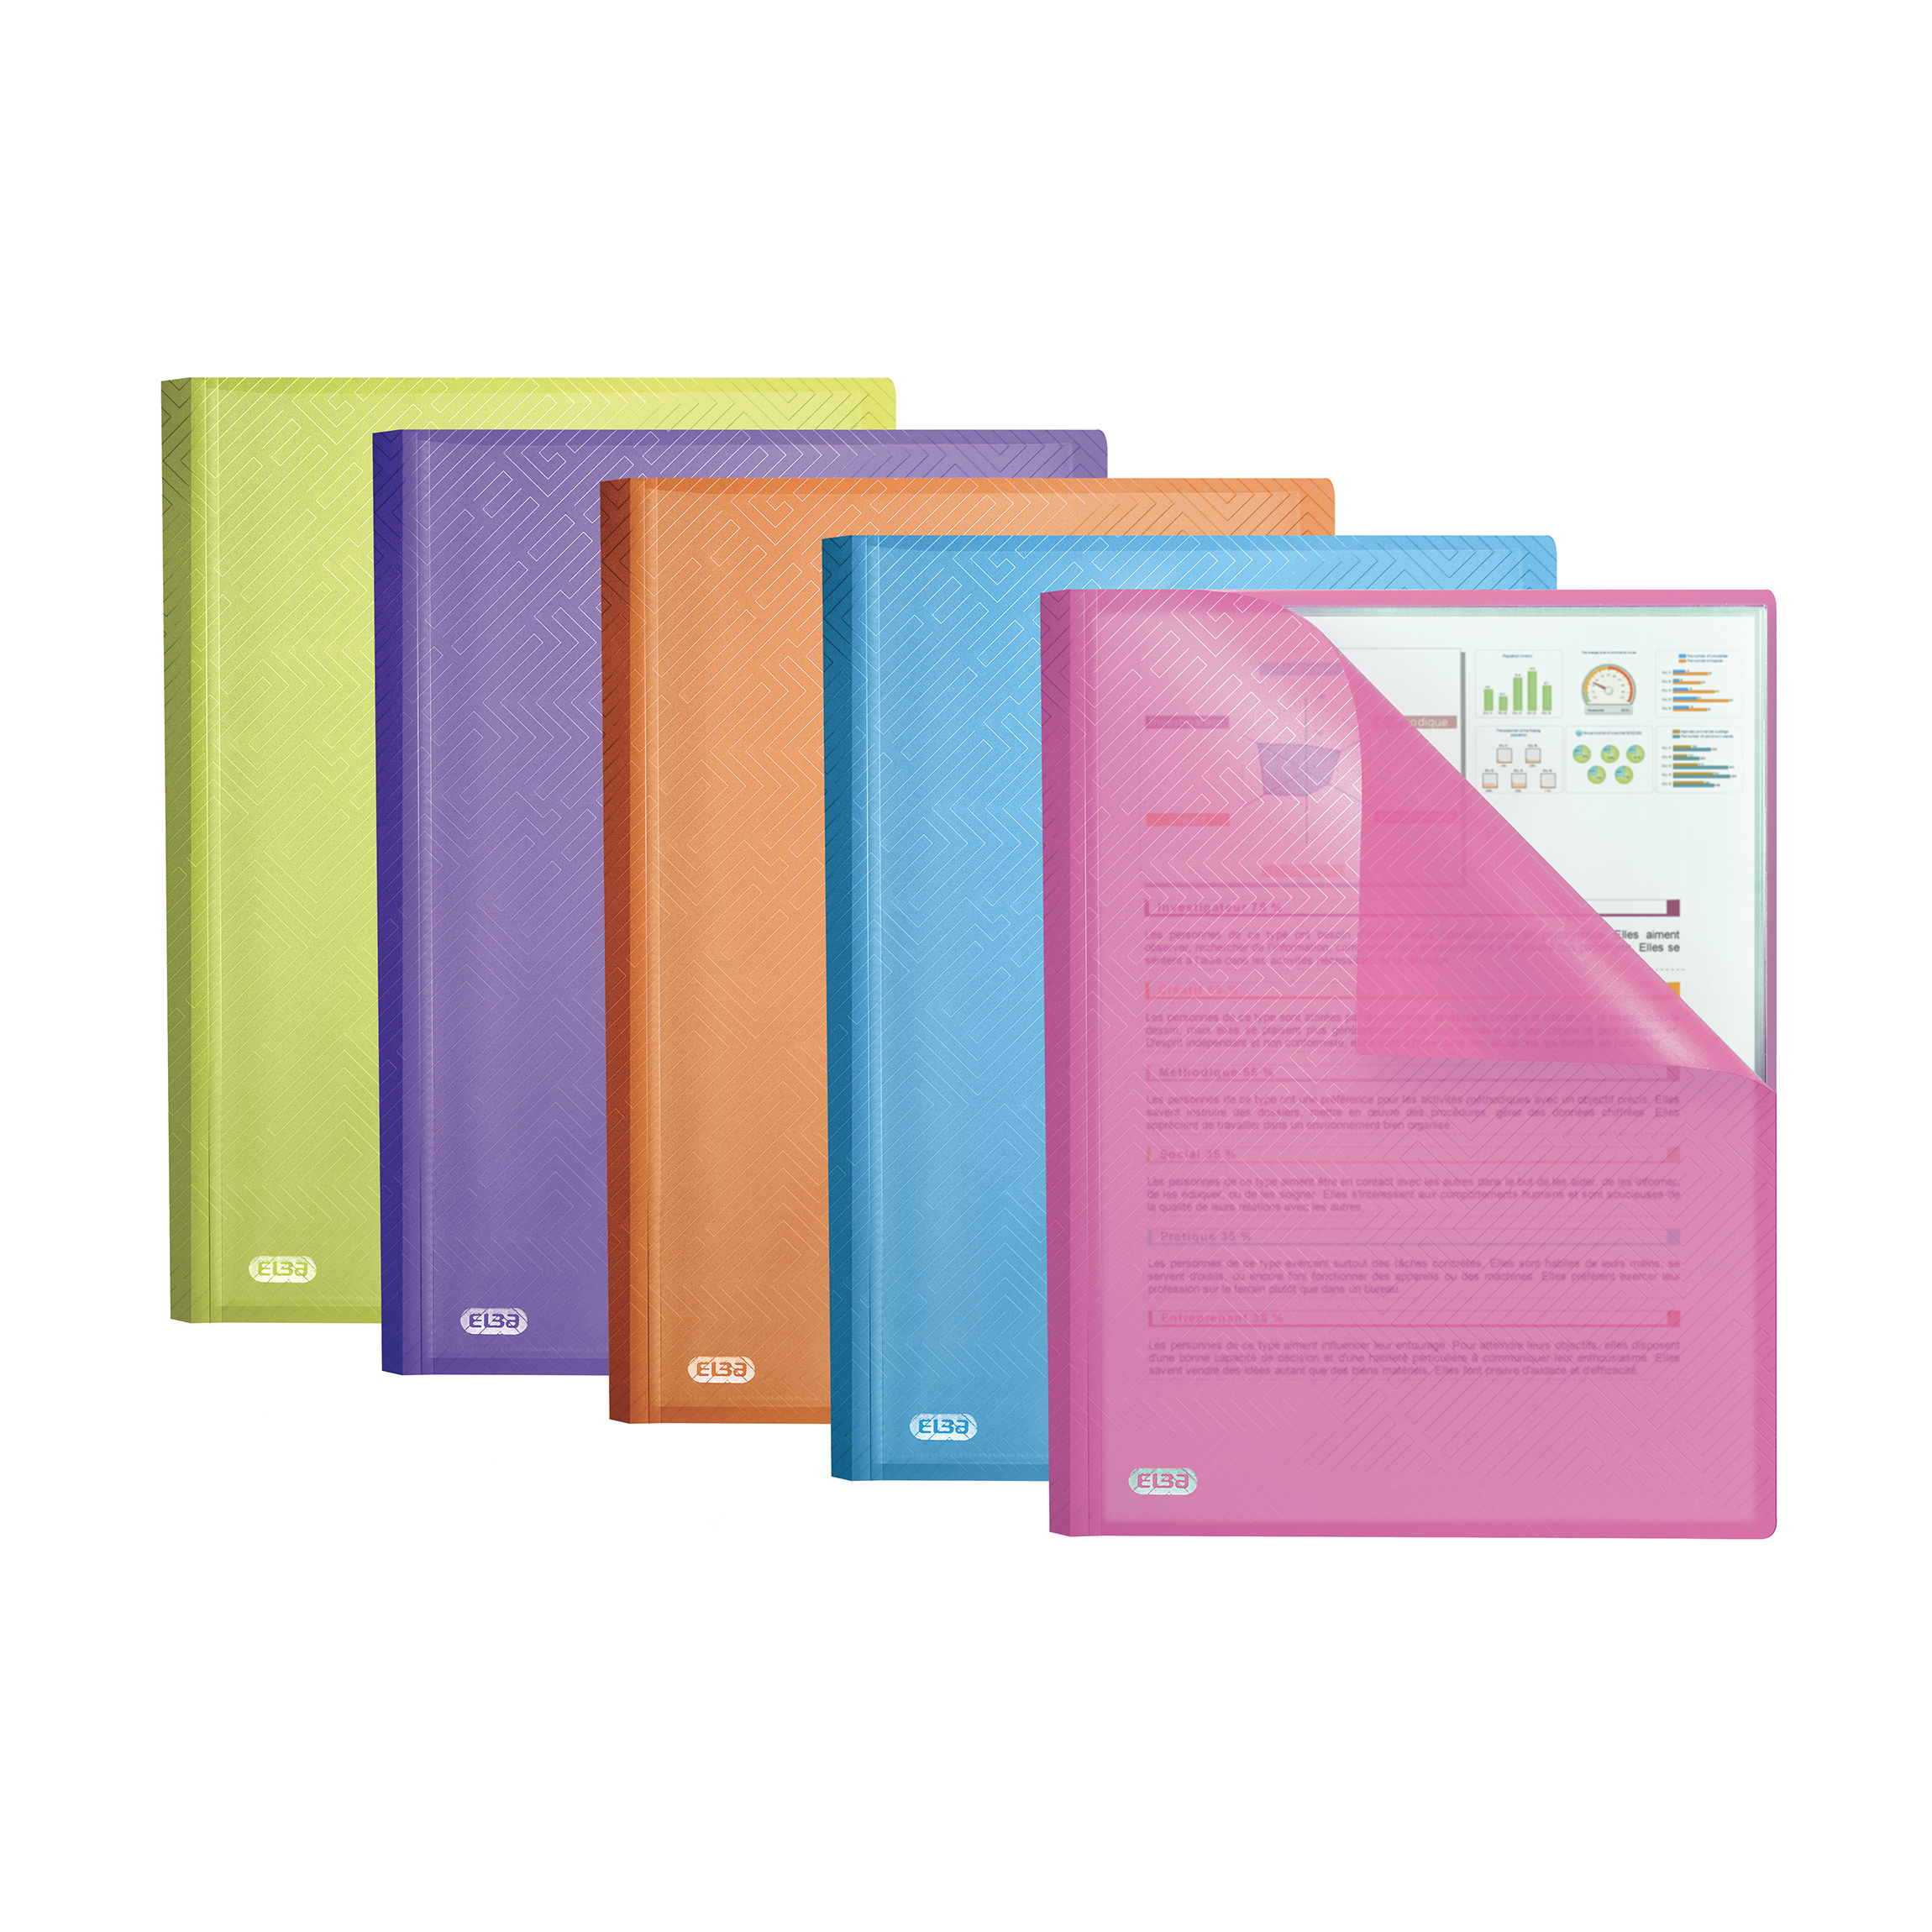 Elba Bright Display Book PP 20 Pkt A4 Astd Ref 400101909 [Pack 10]